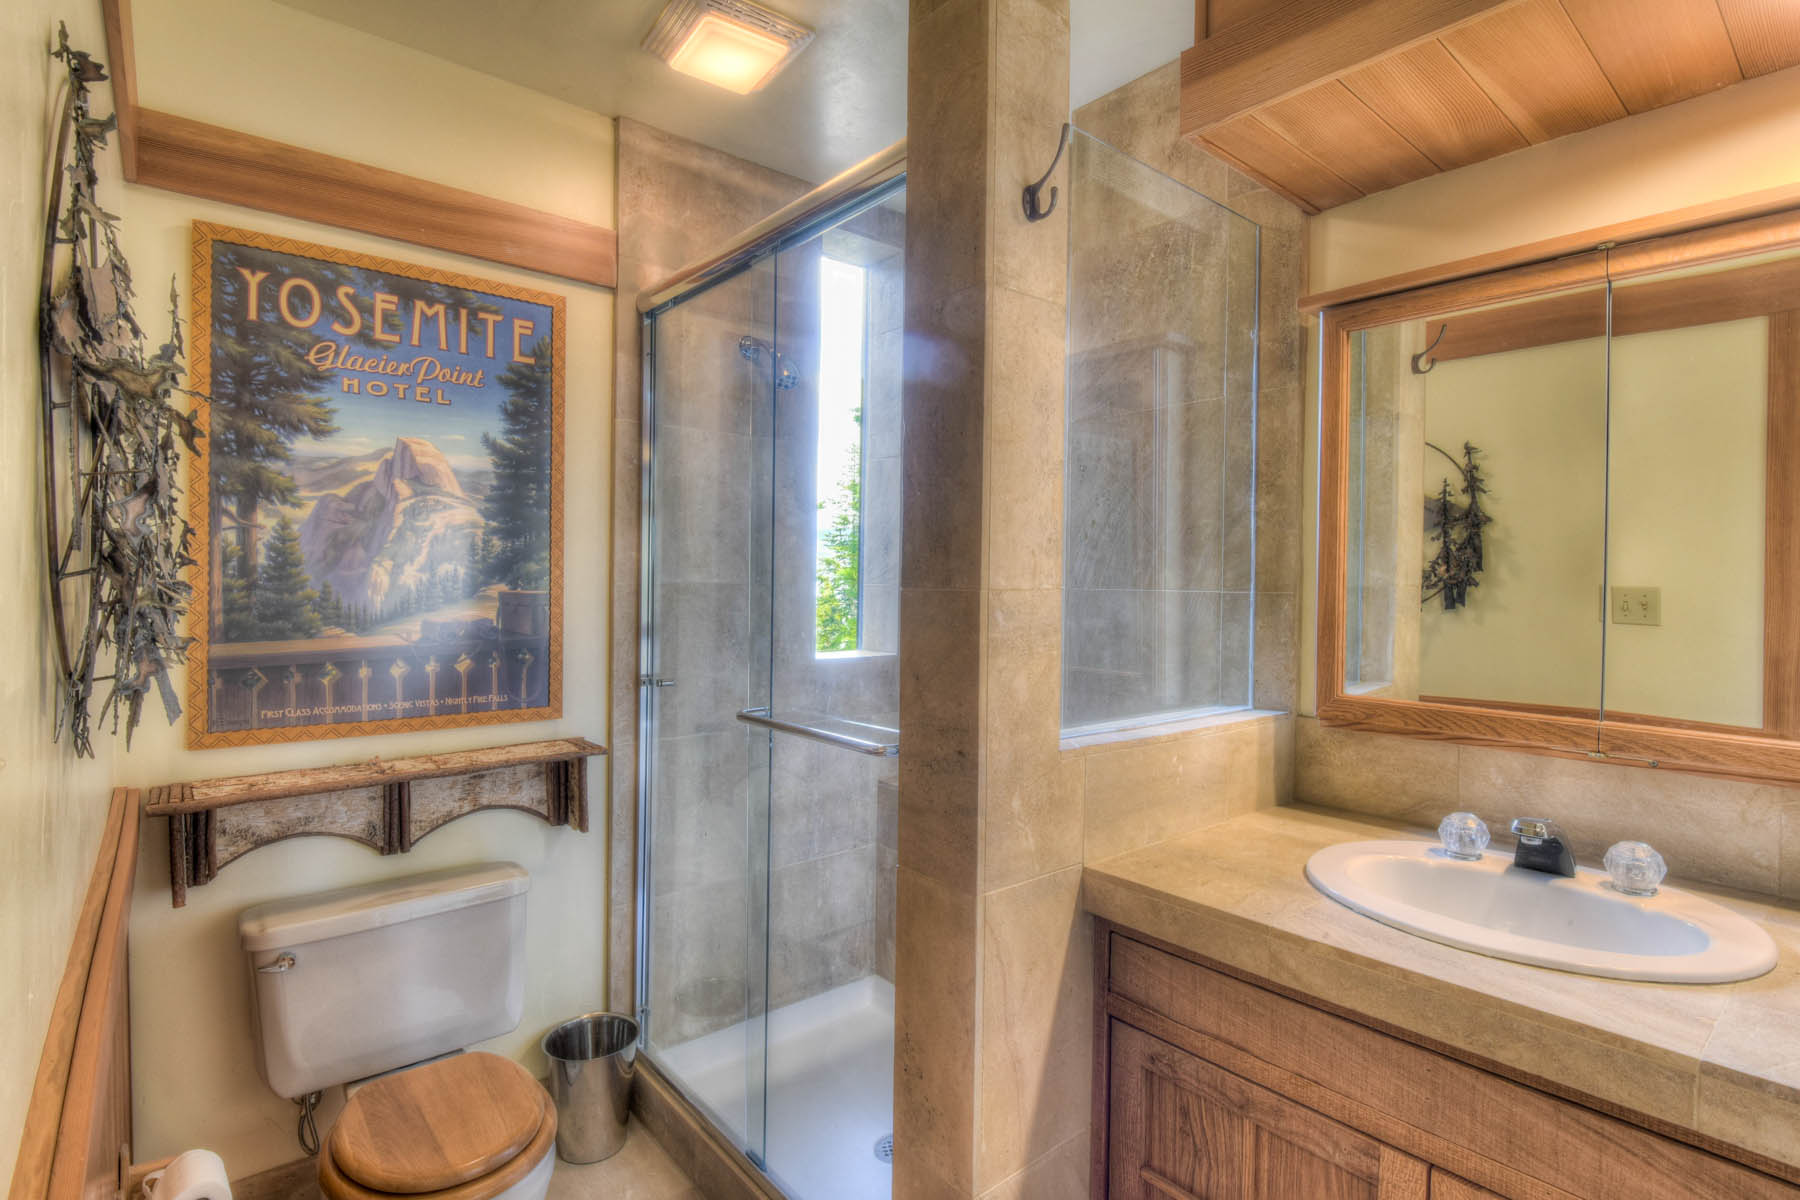 Additional photo for property listing at 390 Tuscarora Road, Crystal Bay, Nevada 390 Tuscarora Road Crystal Bay, Nevada 89402 United States